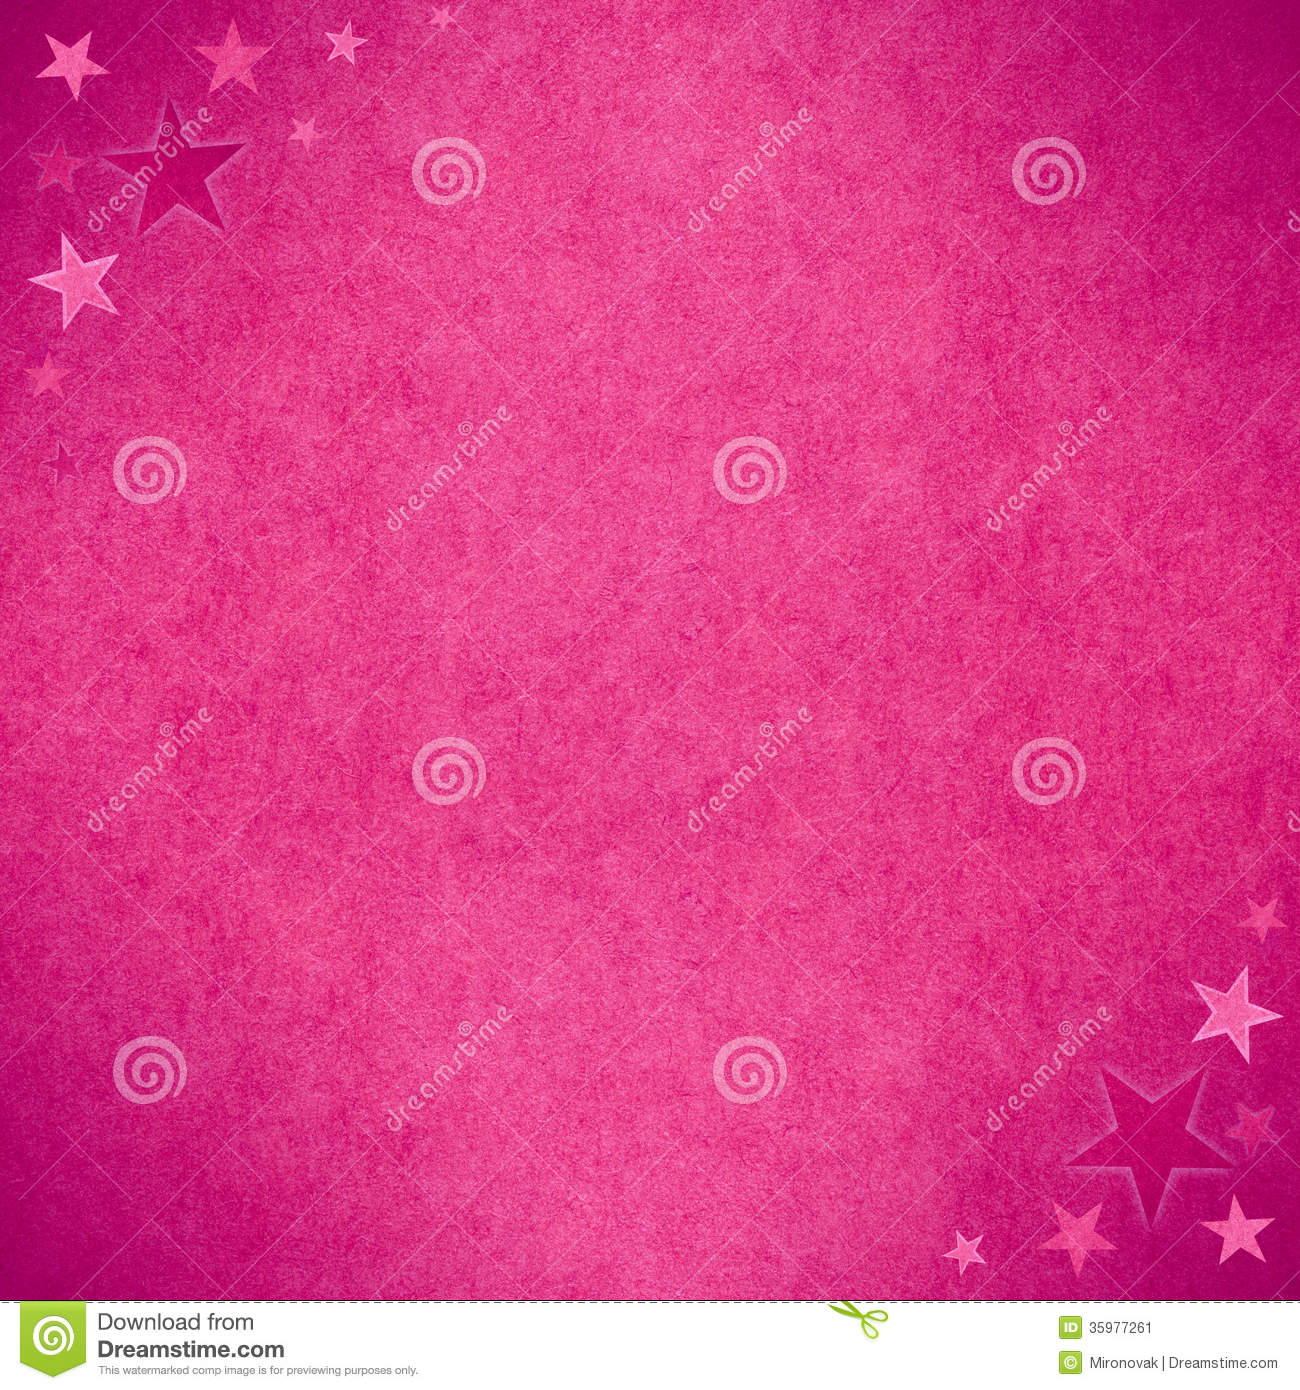 pink paper background stock image  image of grain